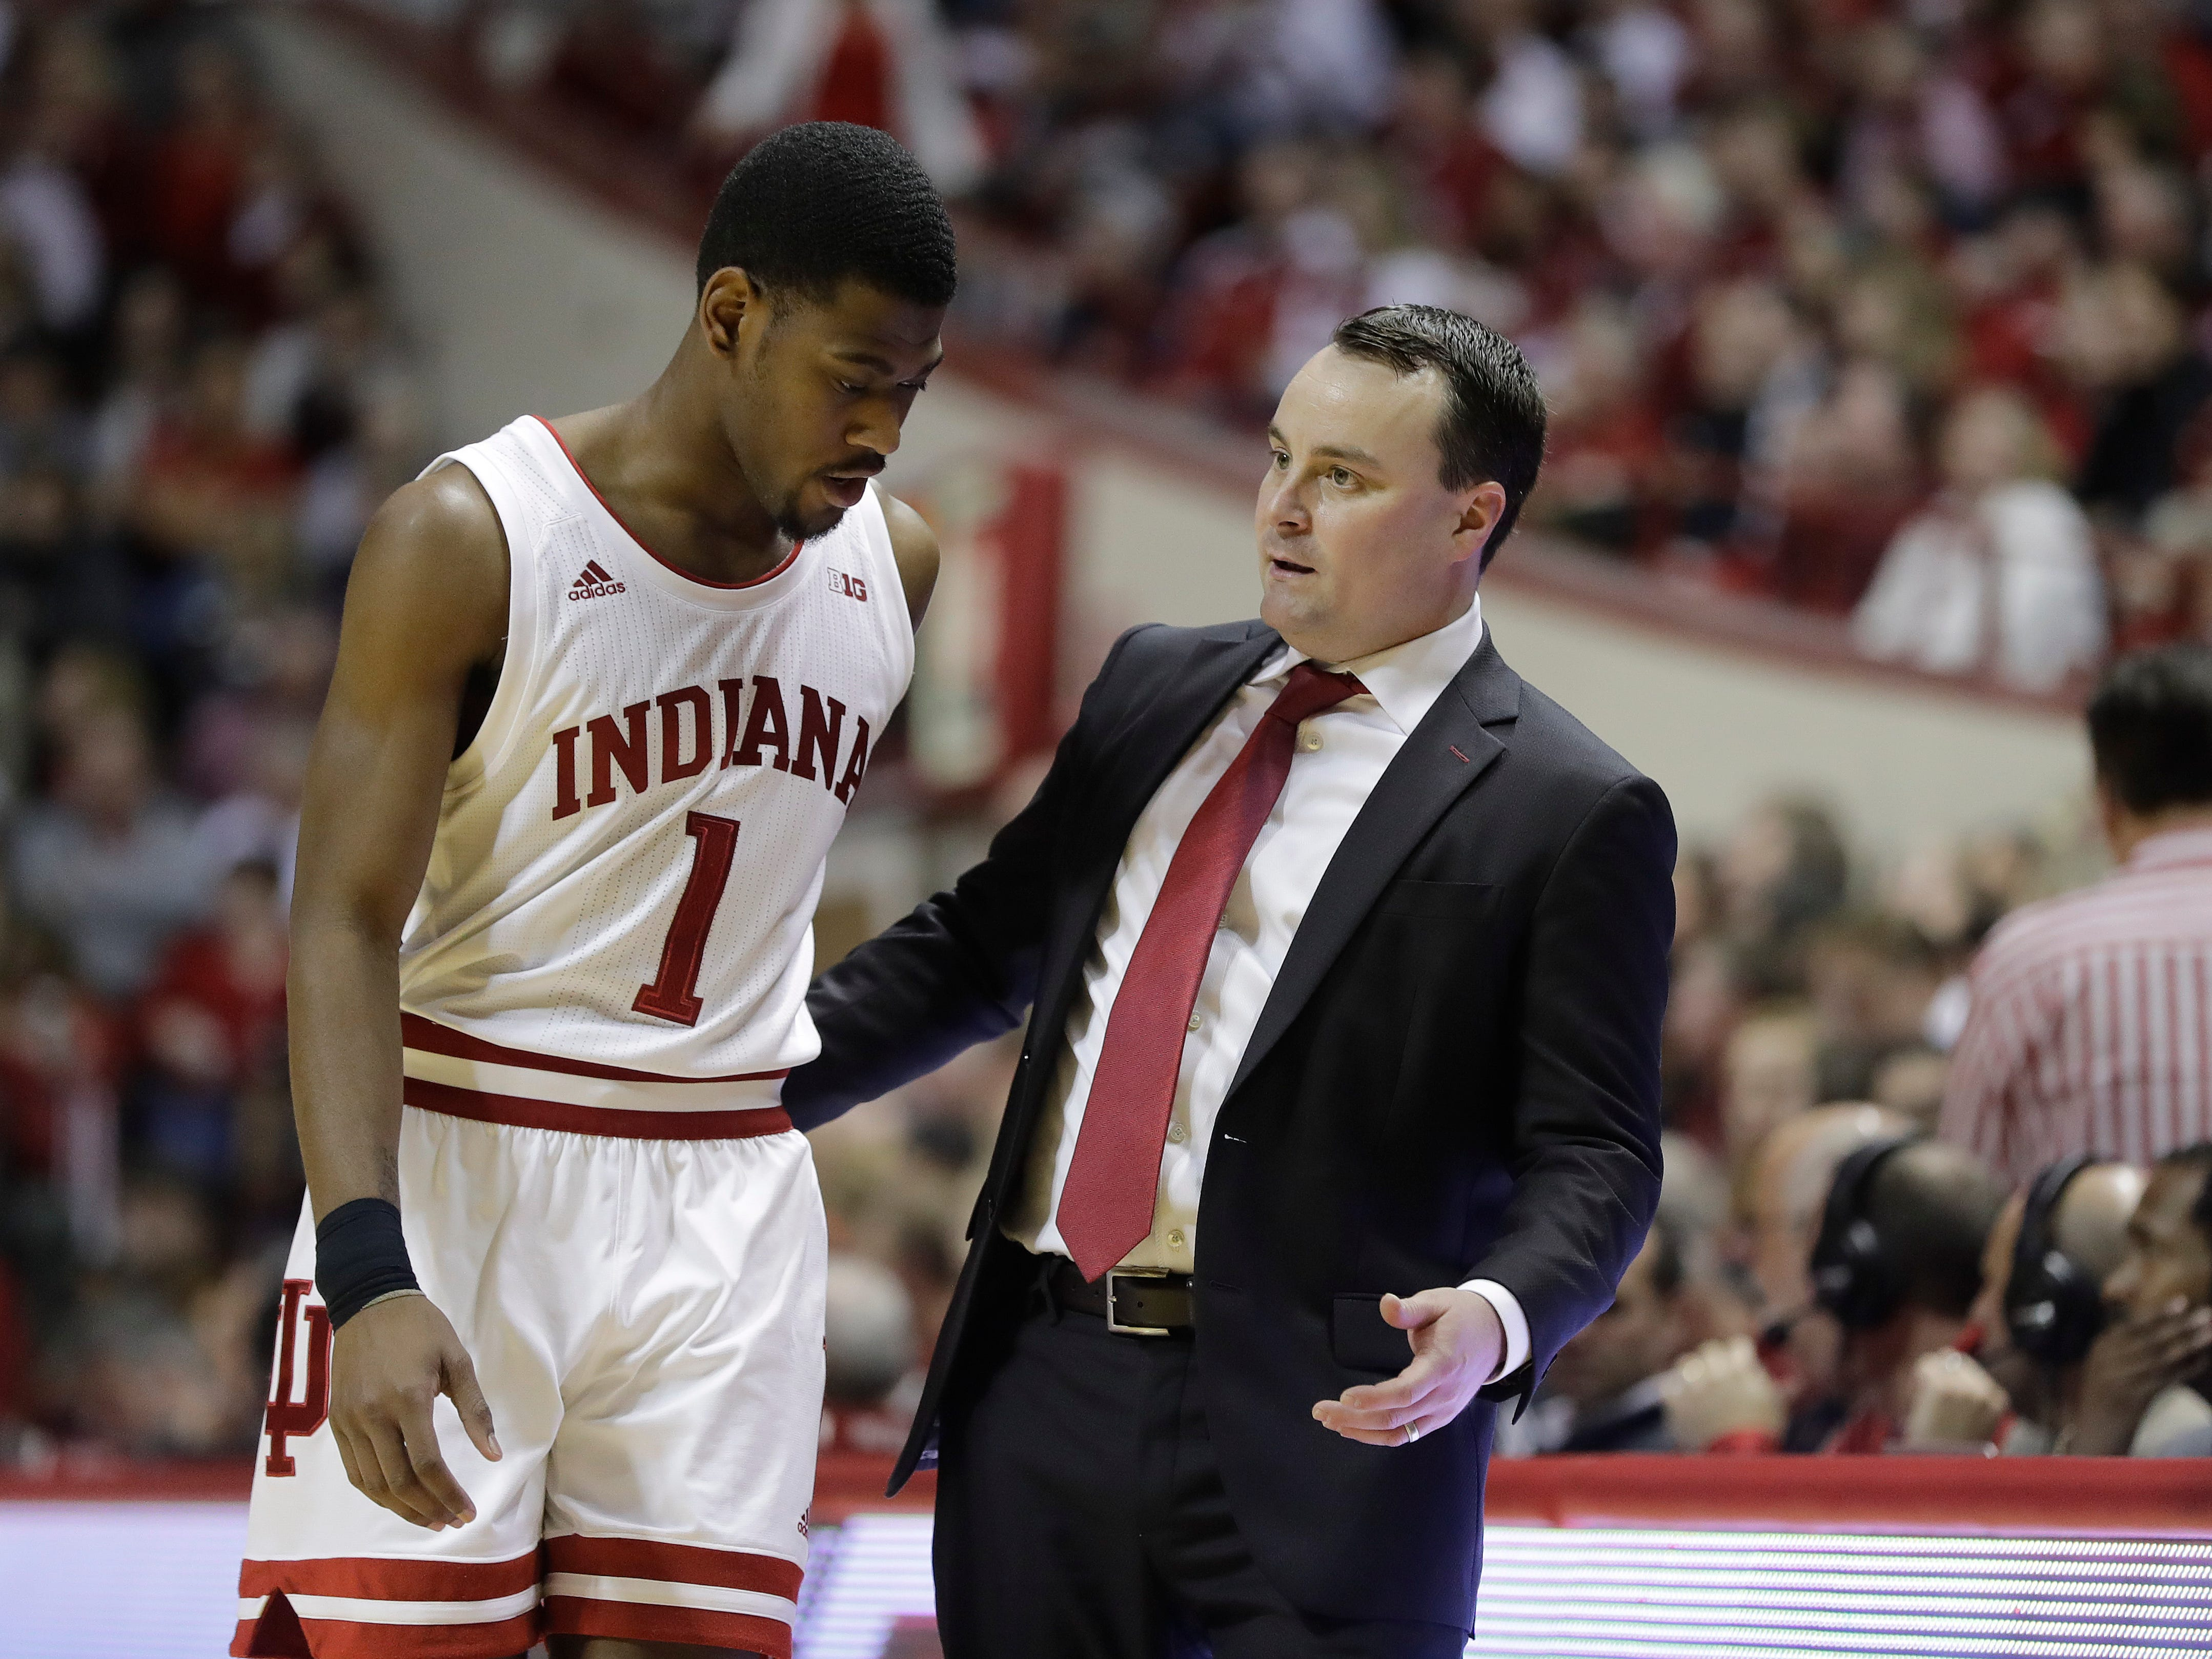 Indiana coach Archie Miller talks with Aljami Durham during the second half of the team's NCAA college basketball game against Illinois, Thursday, Jan. 3, 2019, in Bloomington, Ind. Indiana won 73-65.